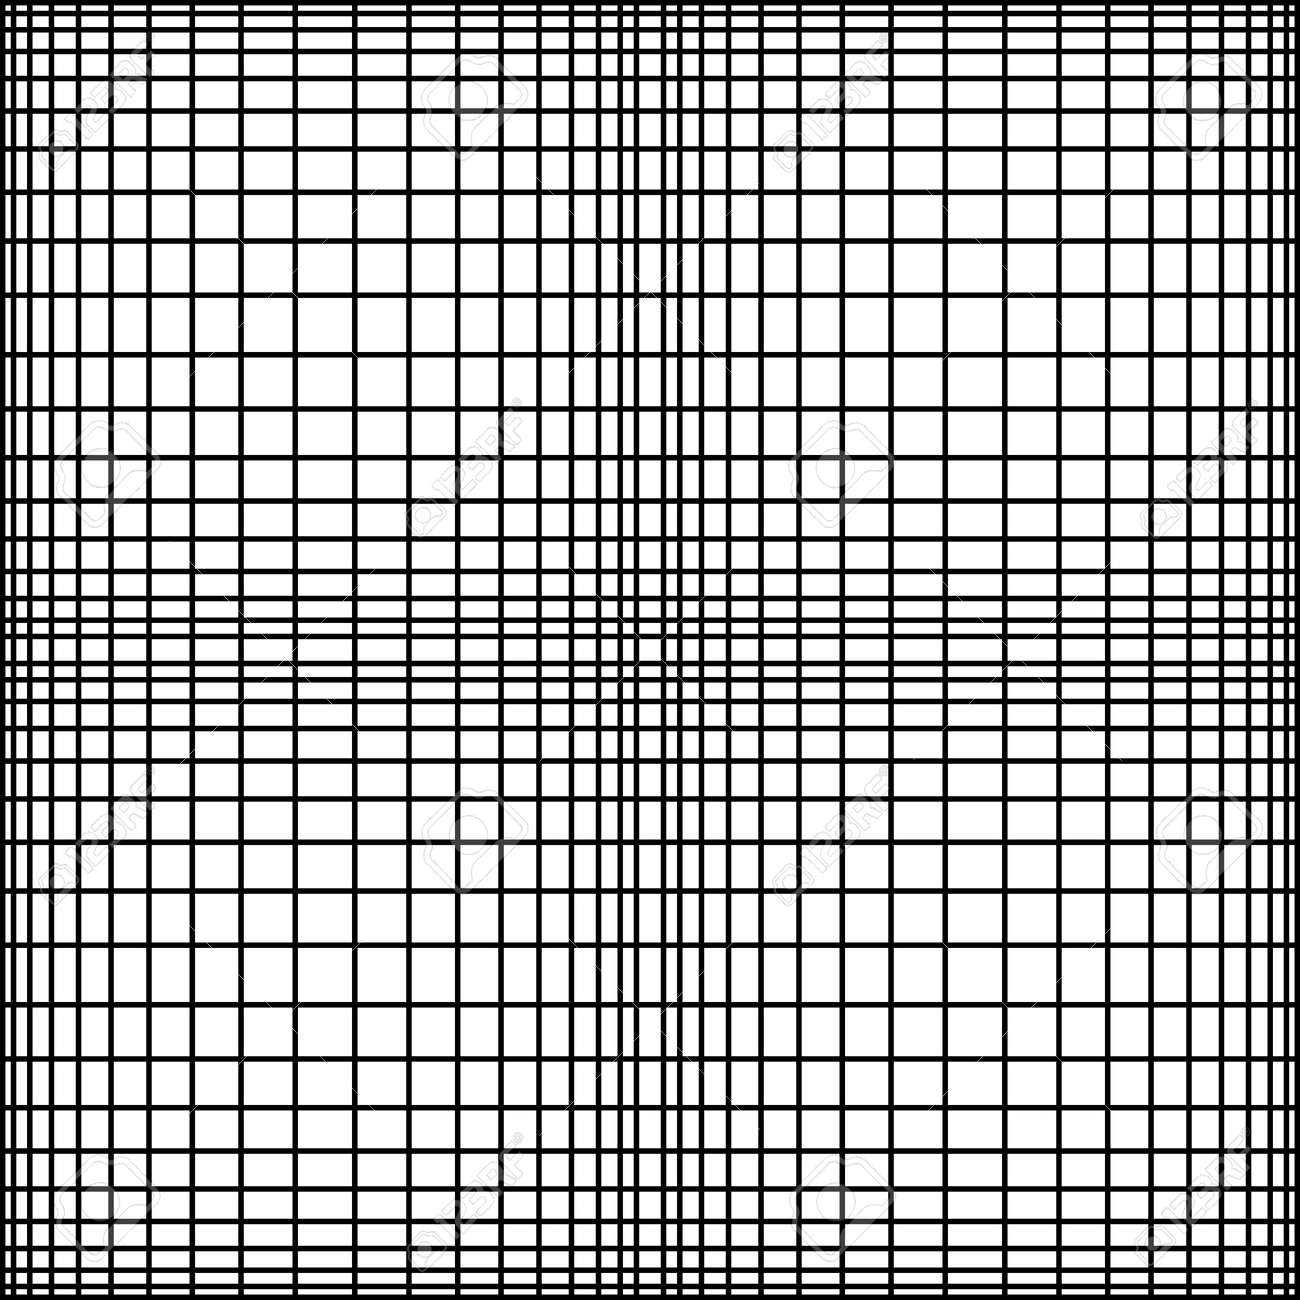 Seamless black and white checkered texture stock images image - Black And White Seamless Checkered Pattern Stock Vector 6511547